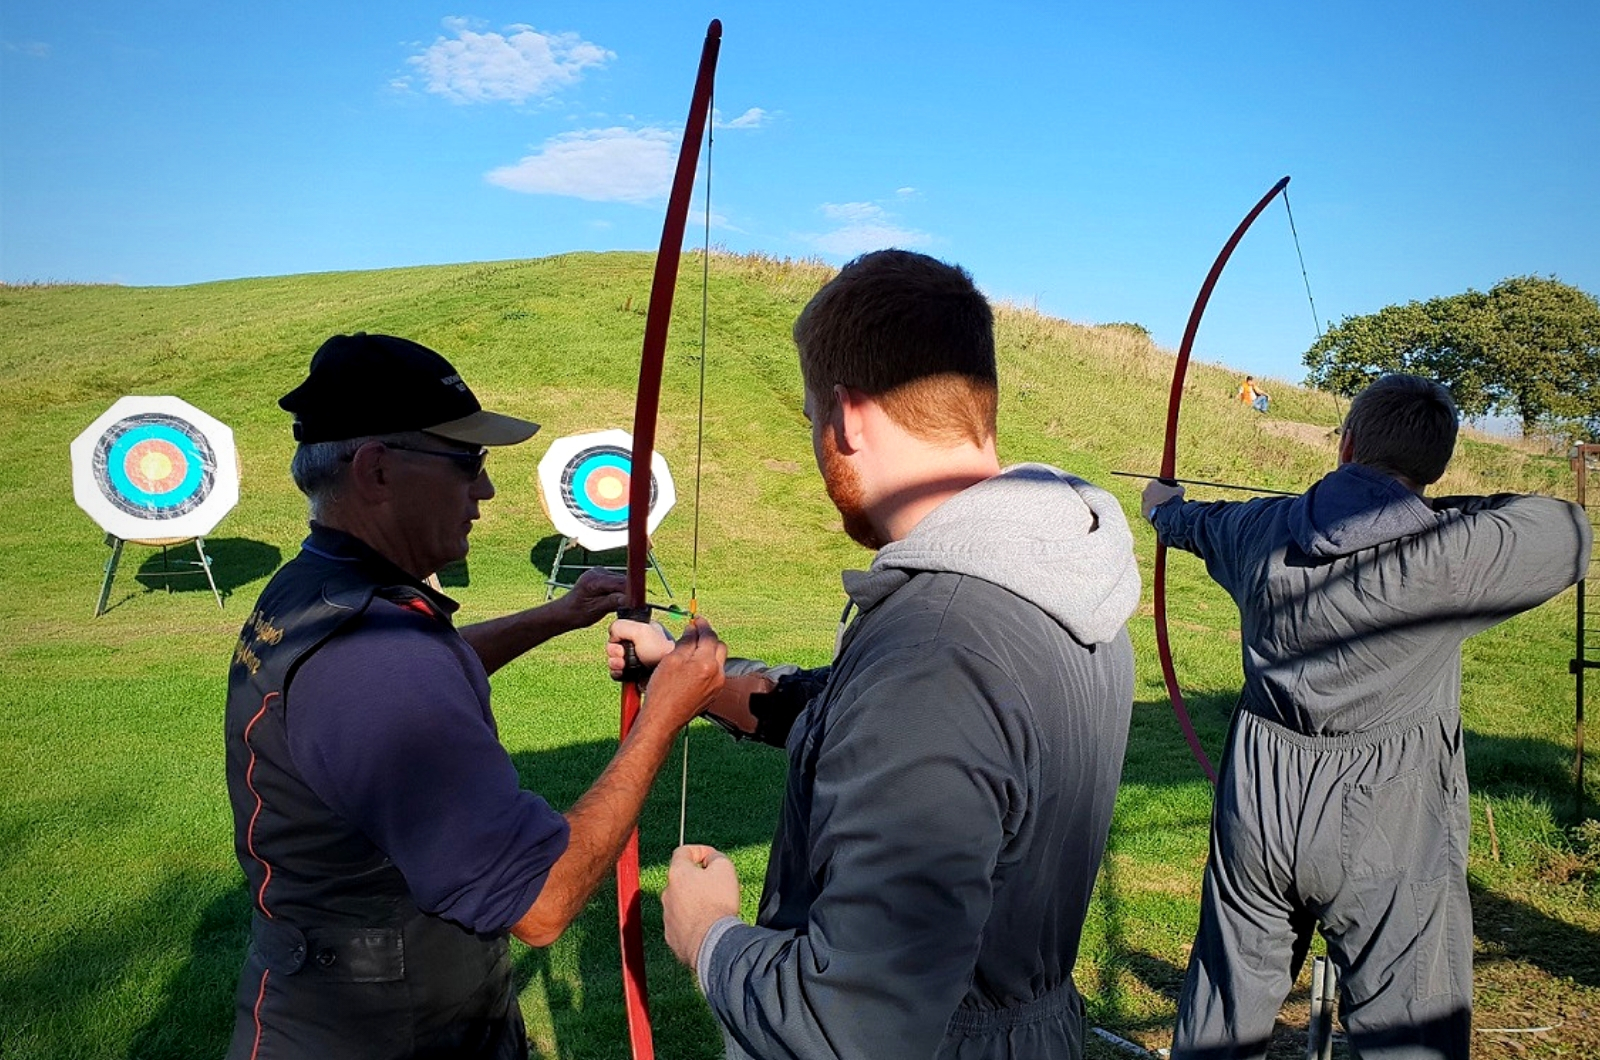 Expert Archery Guidance at the North of England Activity Centre